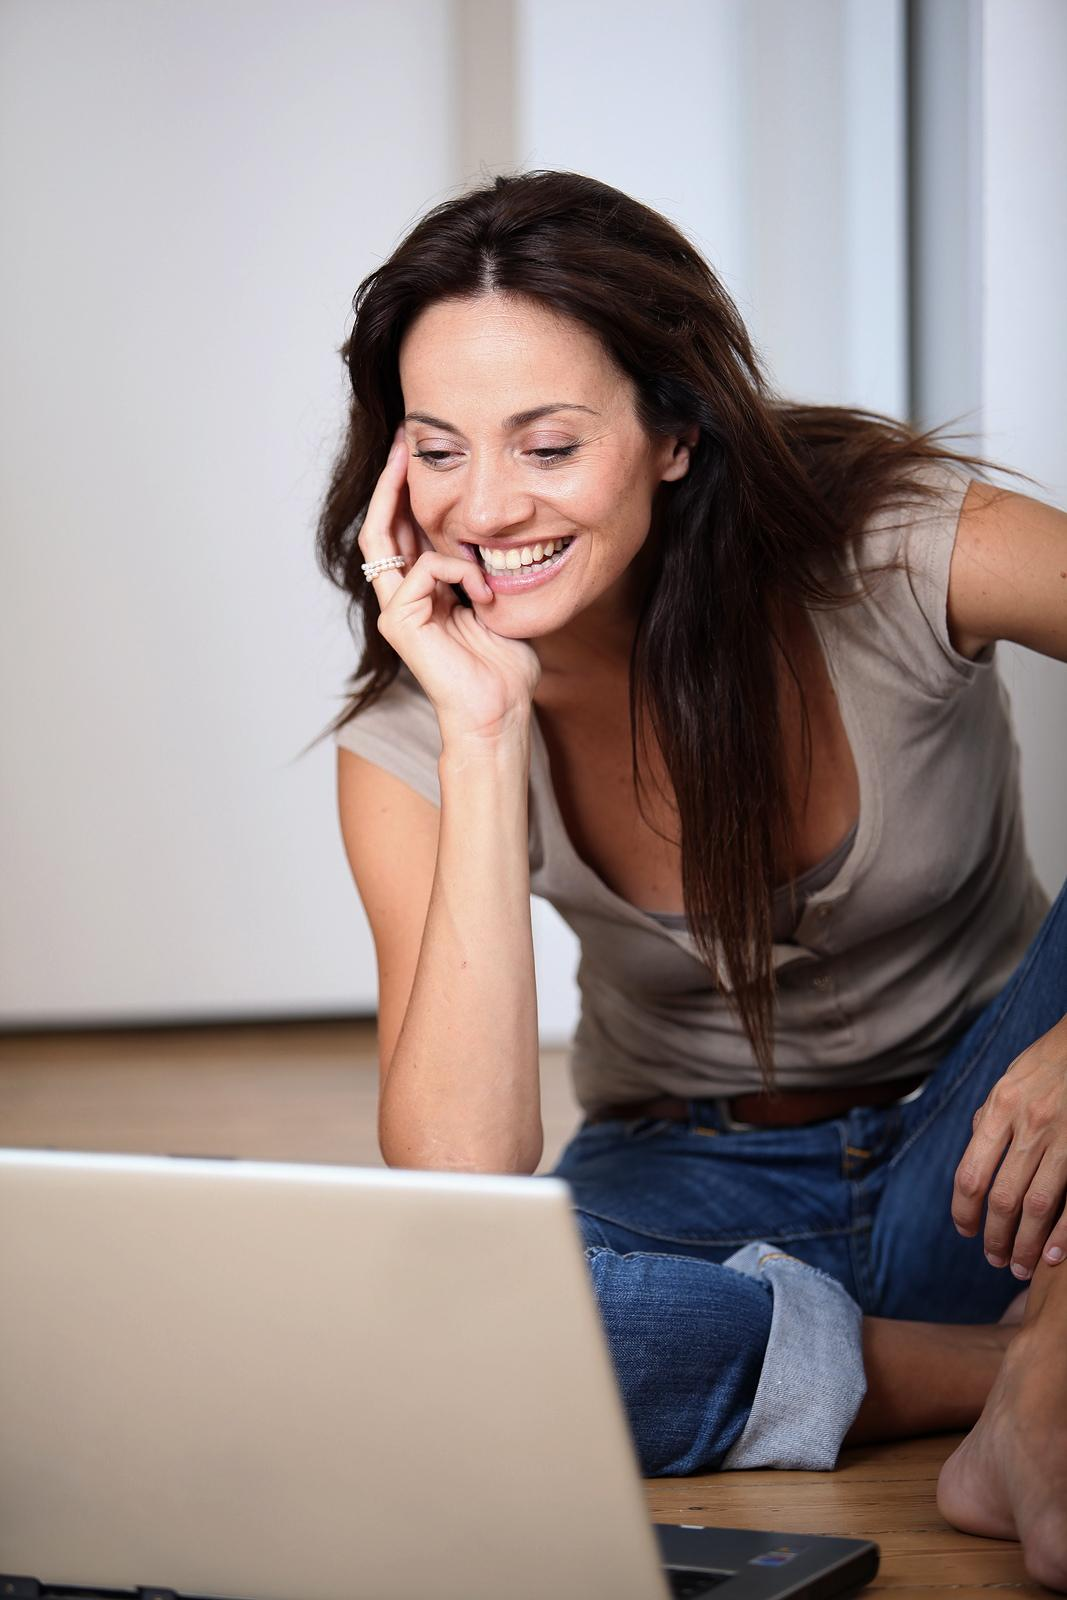 Sex dating sites whit out registration